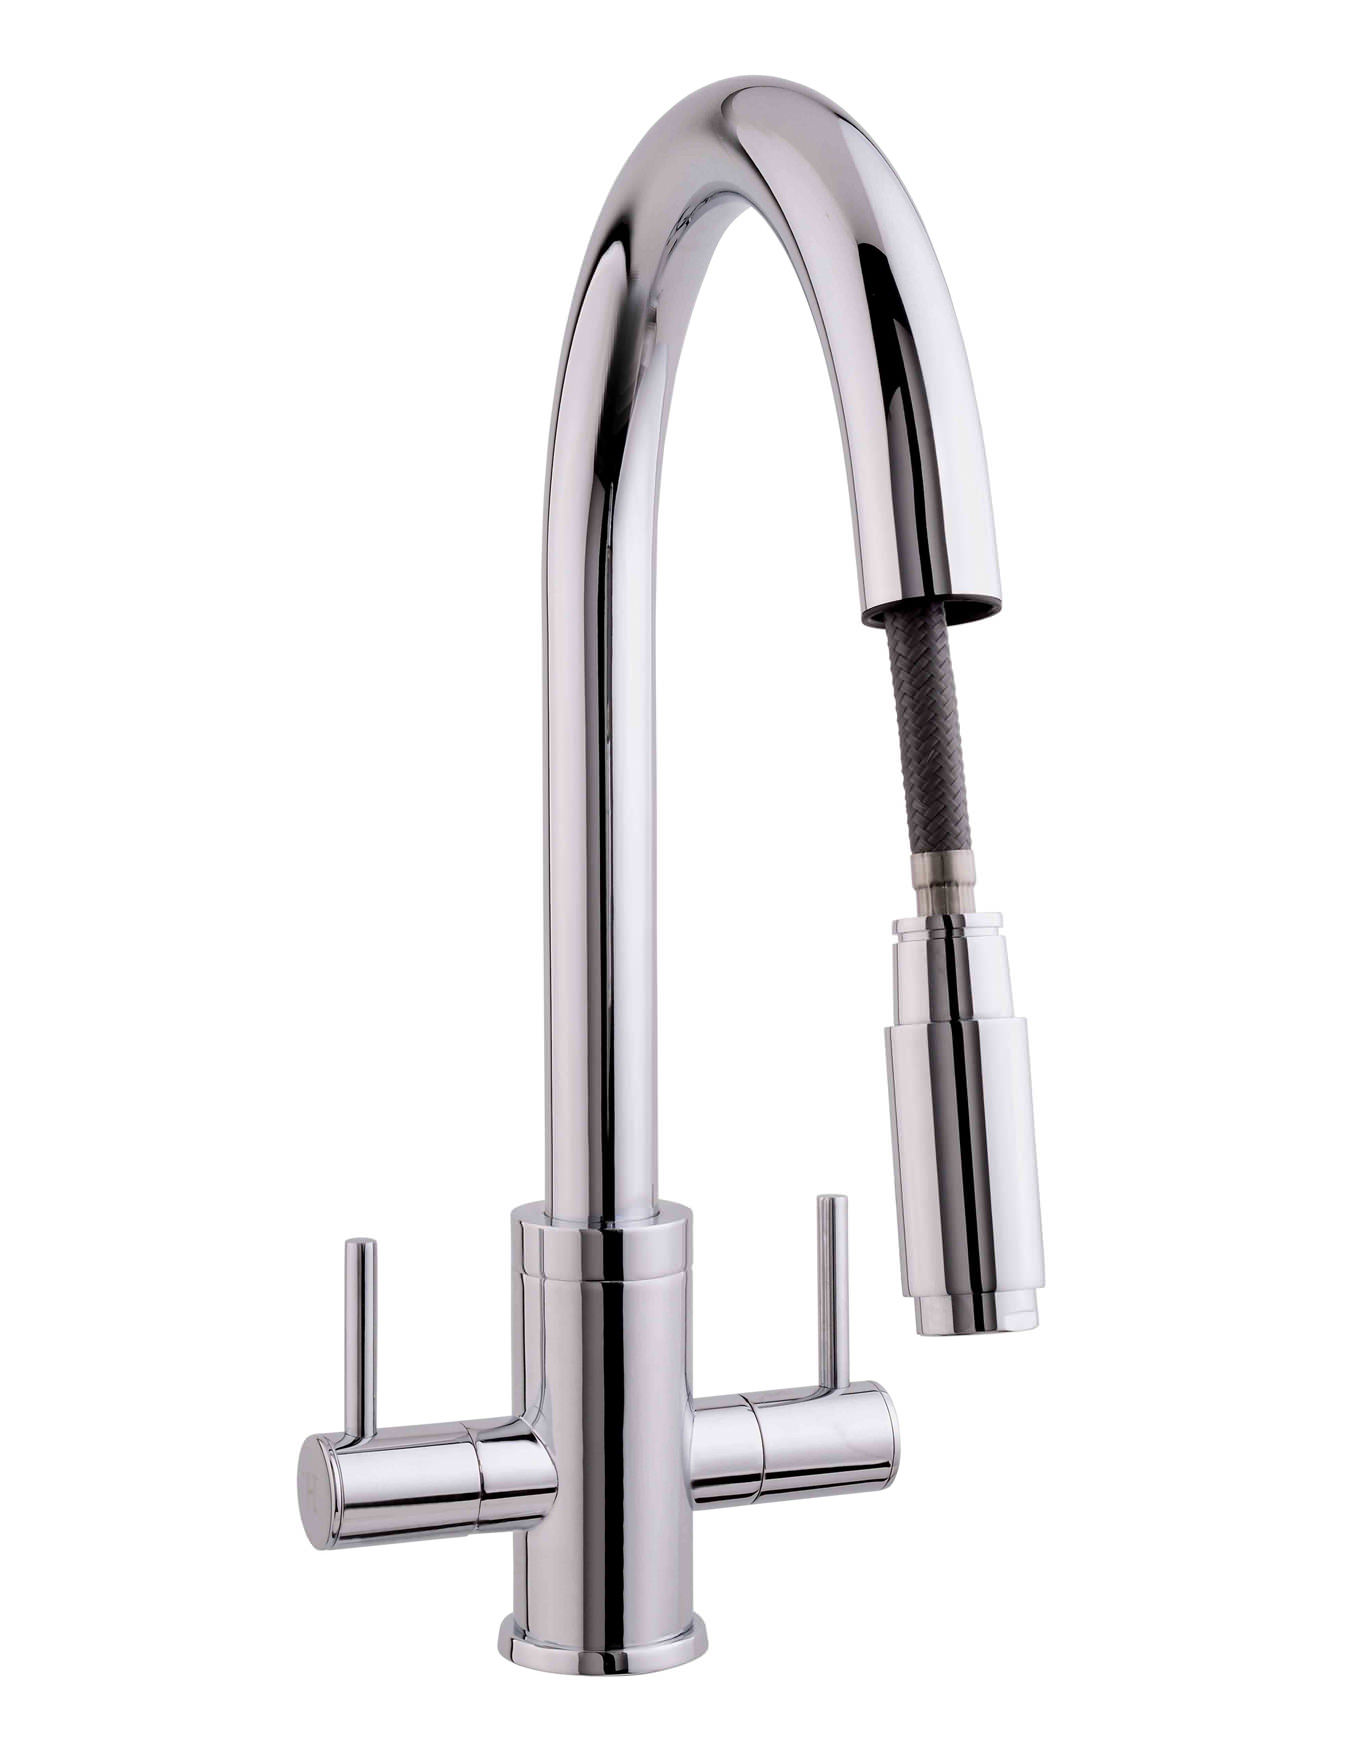 Mayfair Vibe Pro Kitchen Pull Out Spray Mixer Tap Chrome